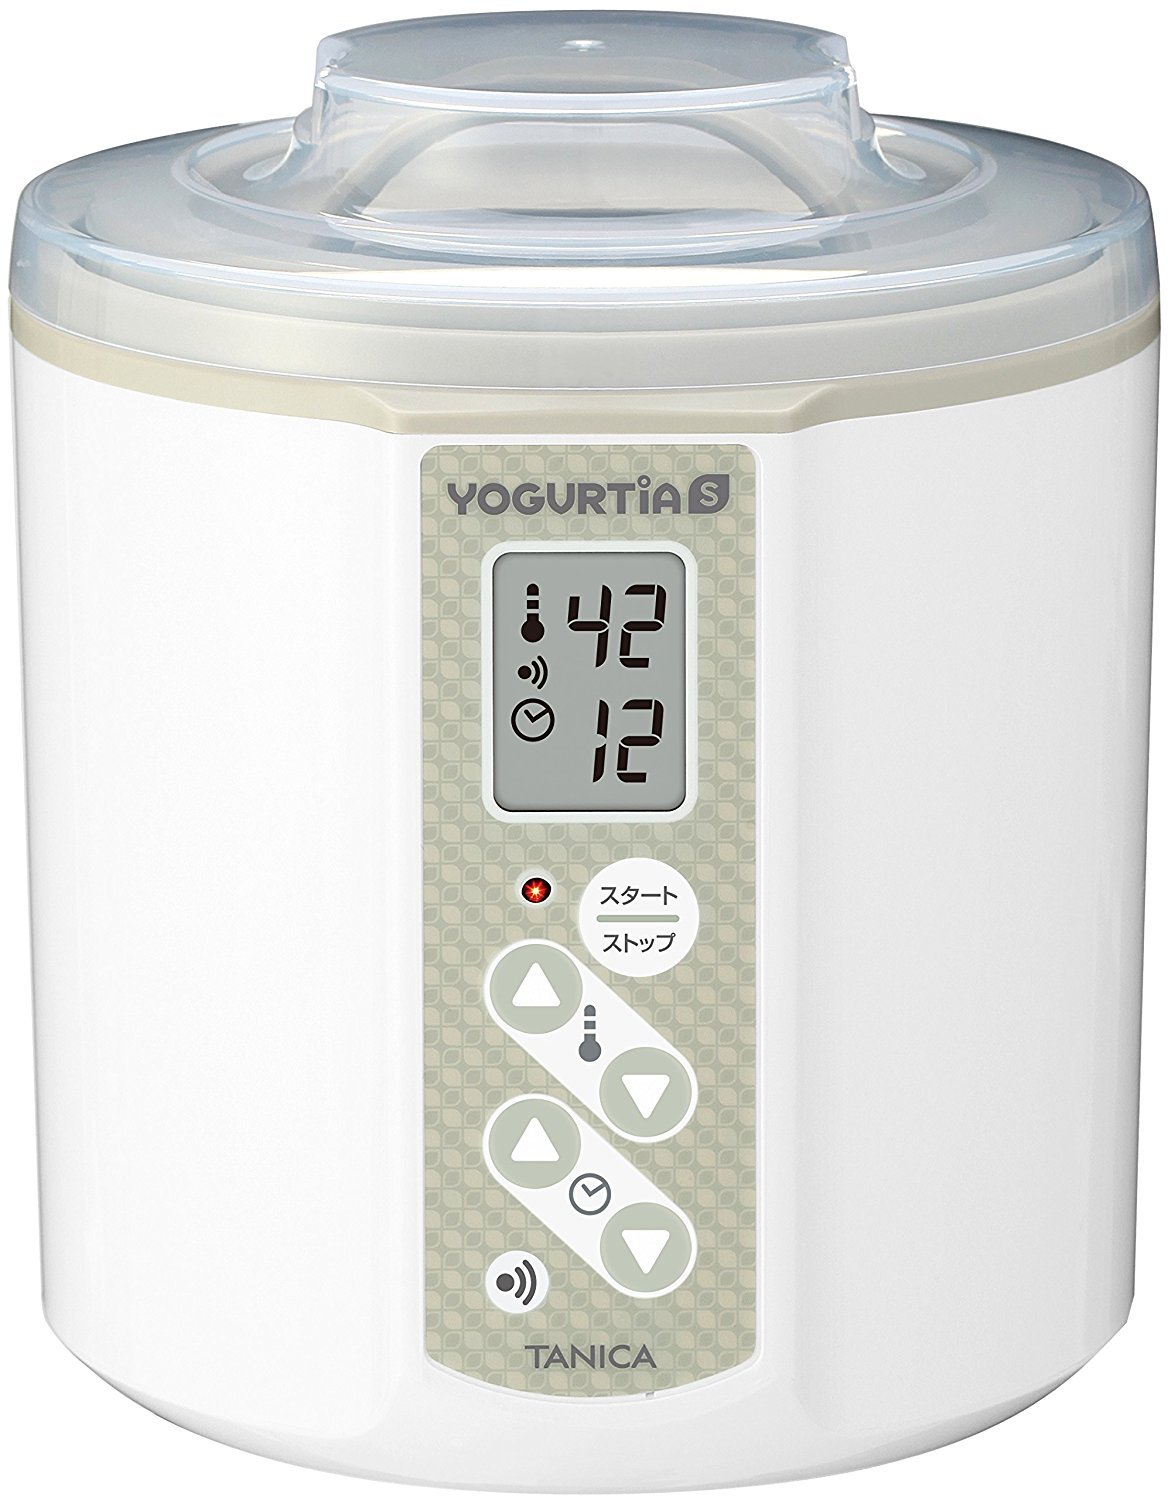 TANICA Yogurt Maker YOGURTiAS YS-01W (White) by TANICA)